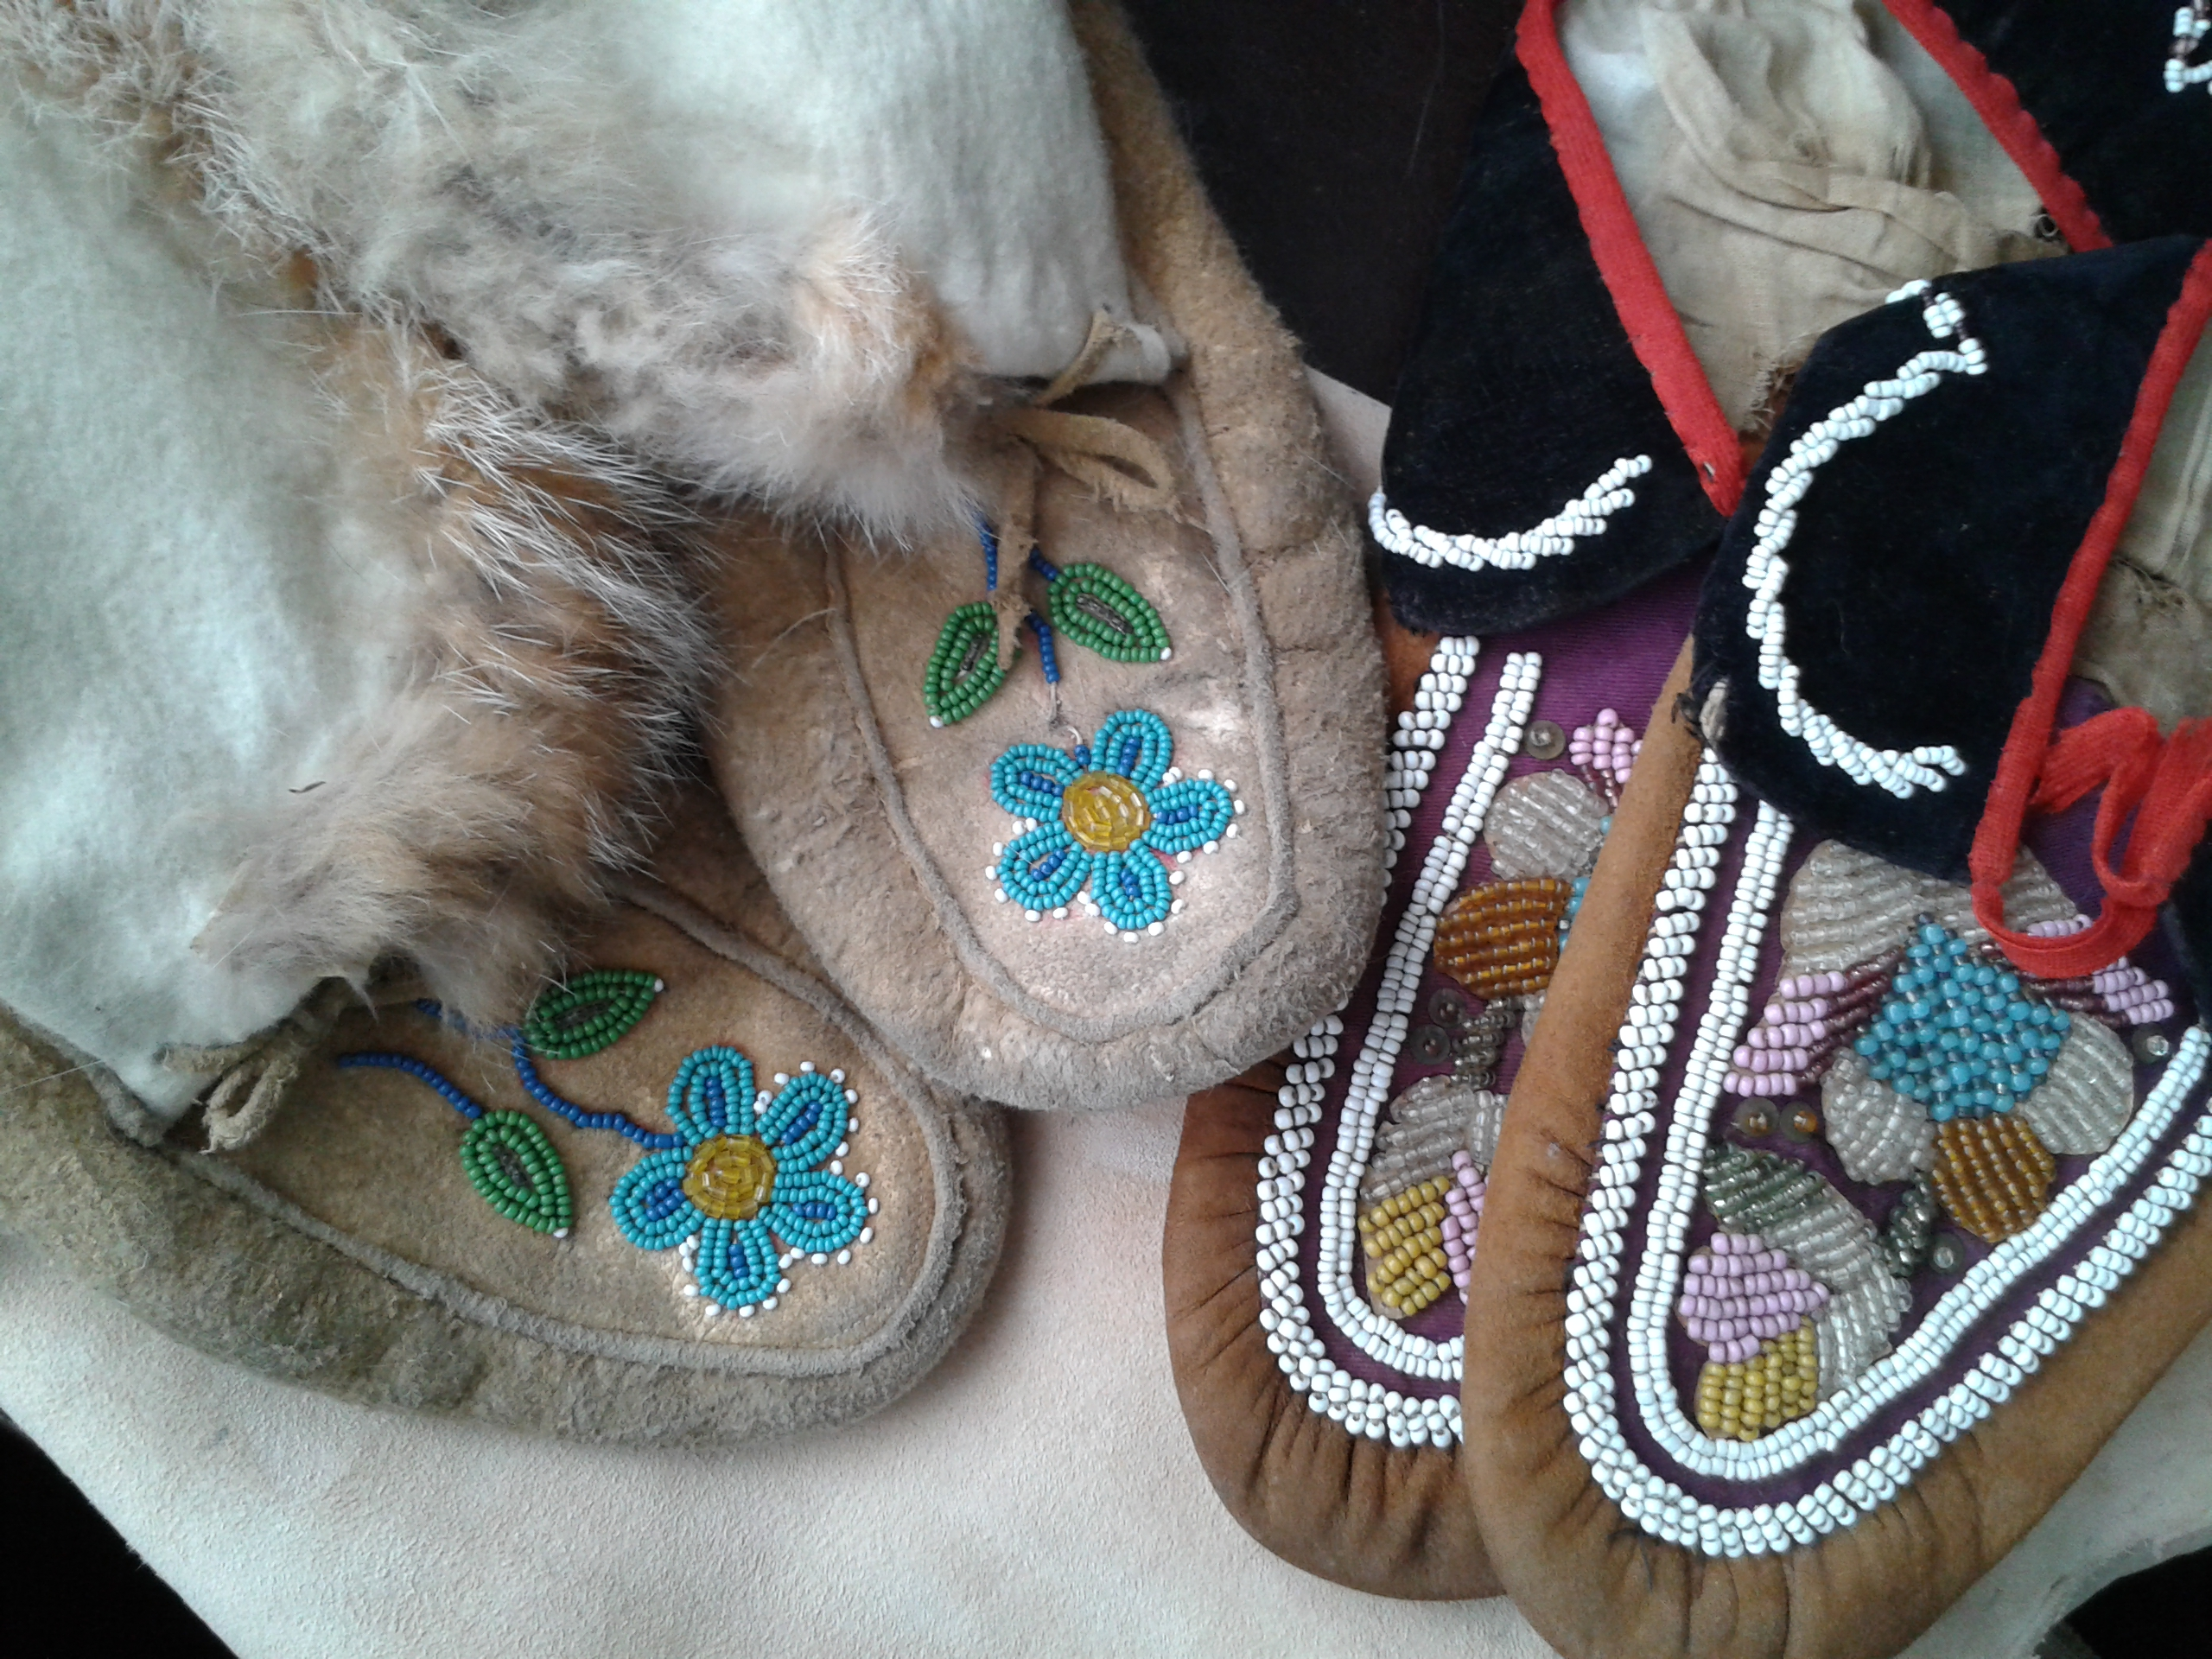 Moccasins made from braintan buckskin, with glass beads